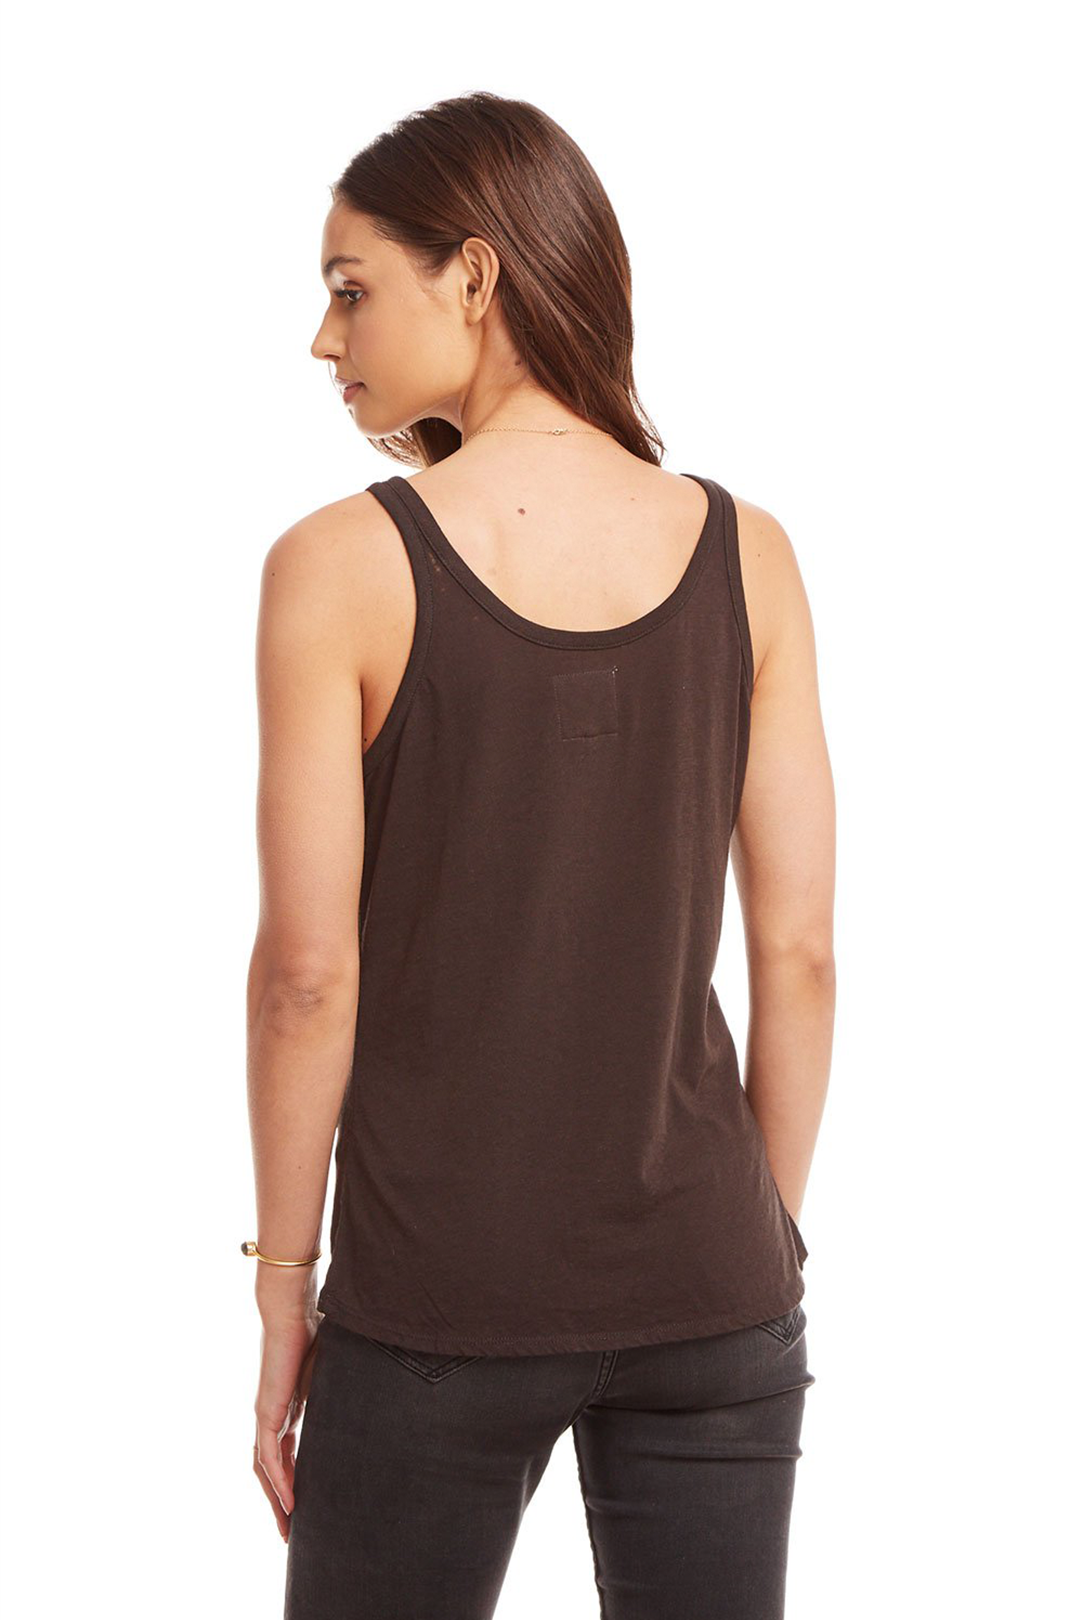 Chaser Vintage Jersey Snap Front Hi-Lo Henley Baby Tank - Union Black